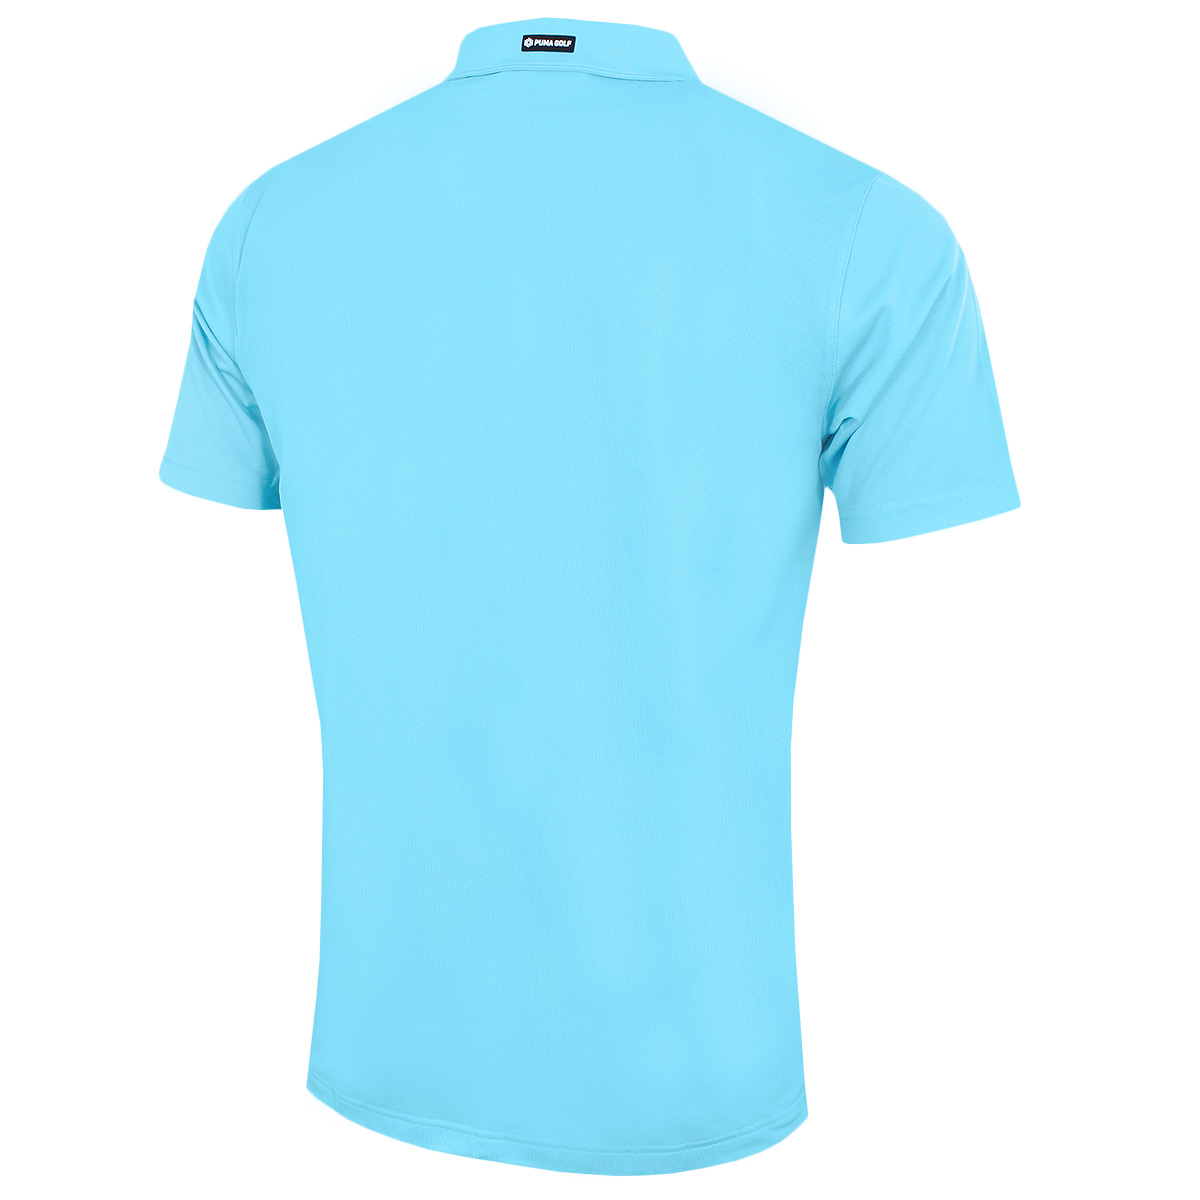 Puma-Golf-Mens-Essential-Pounce-Polo-Shirt-DryCell-Lightweight-Tech-43-OFF-RRP thumbnail 36